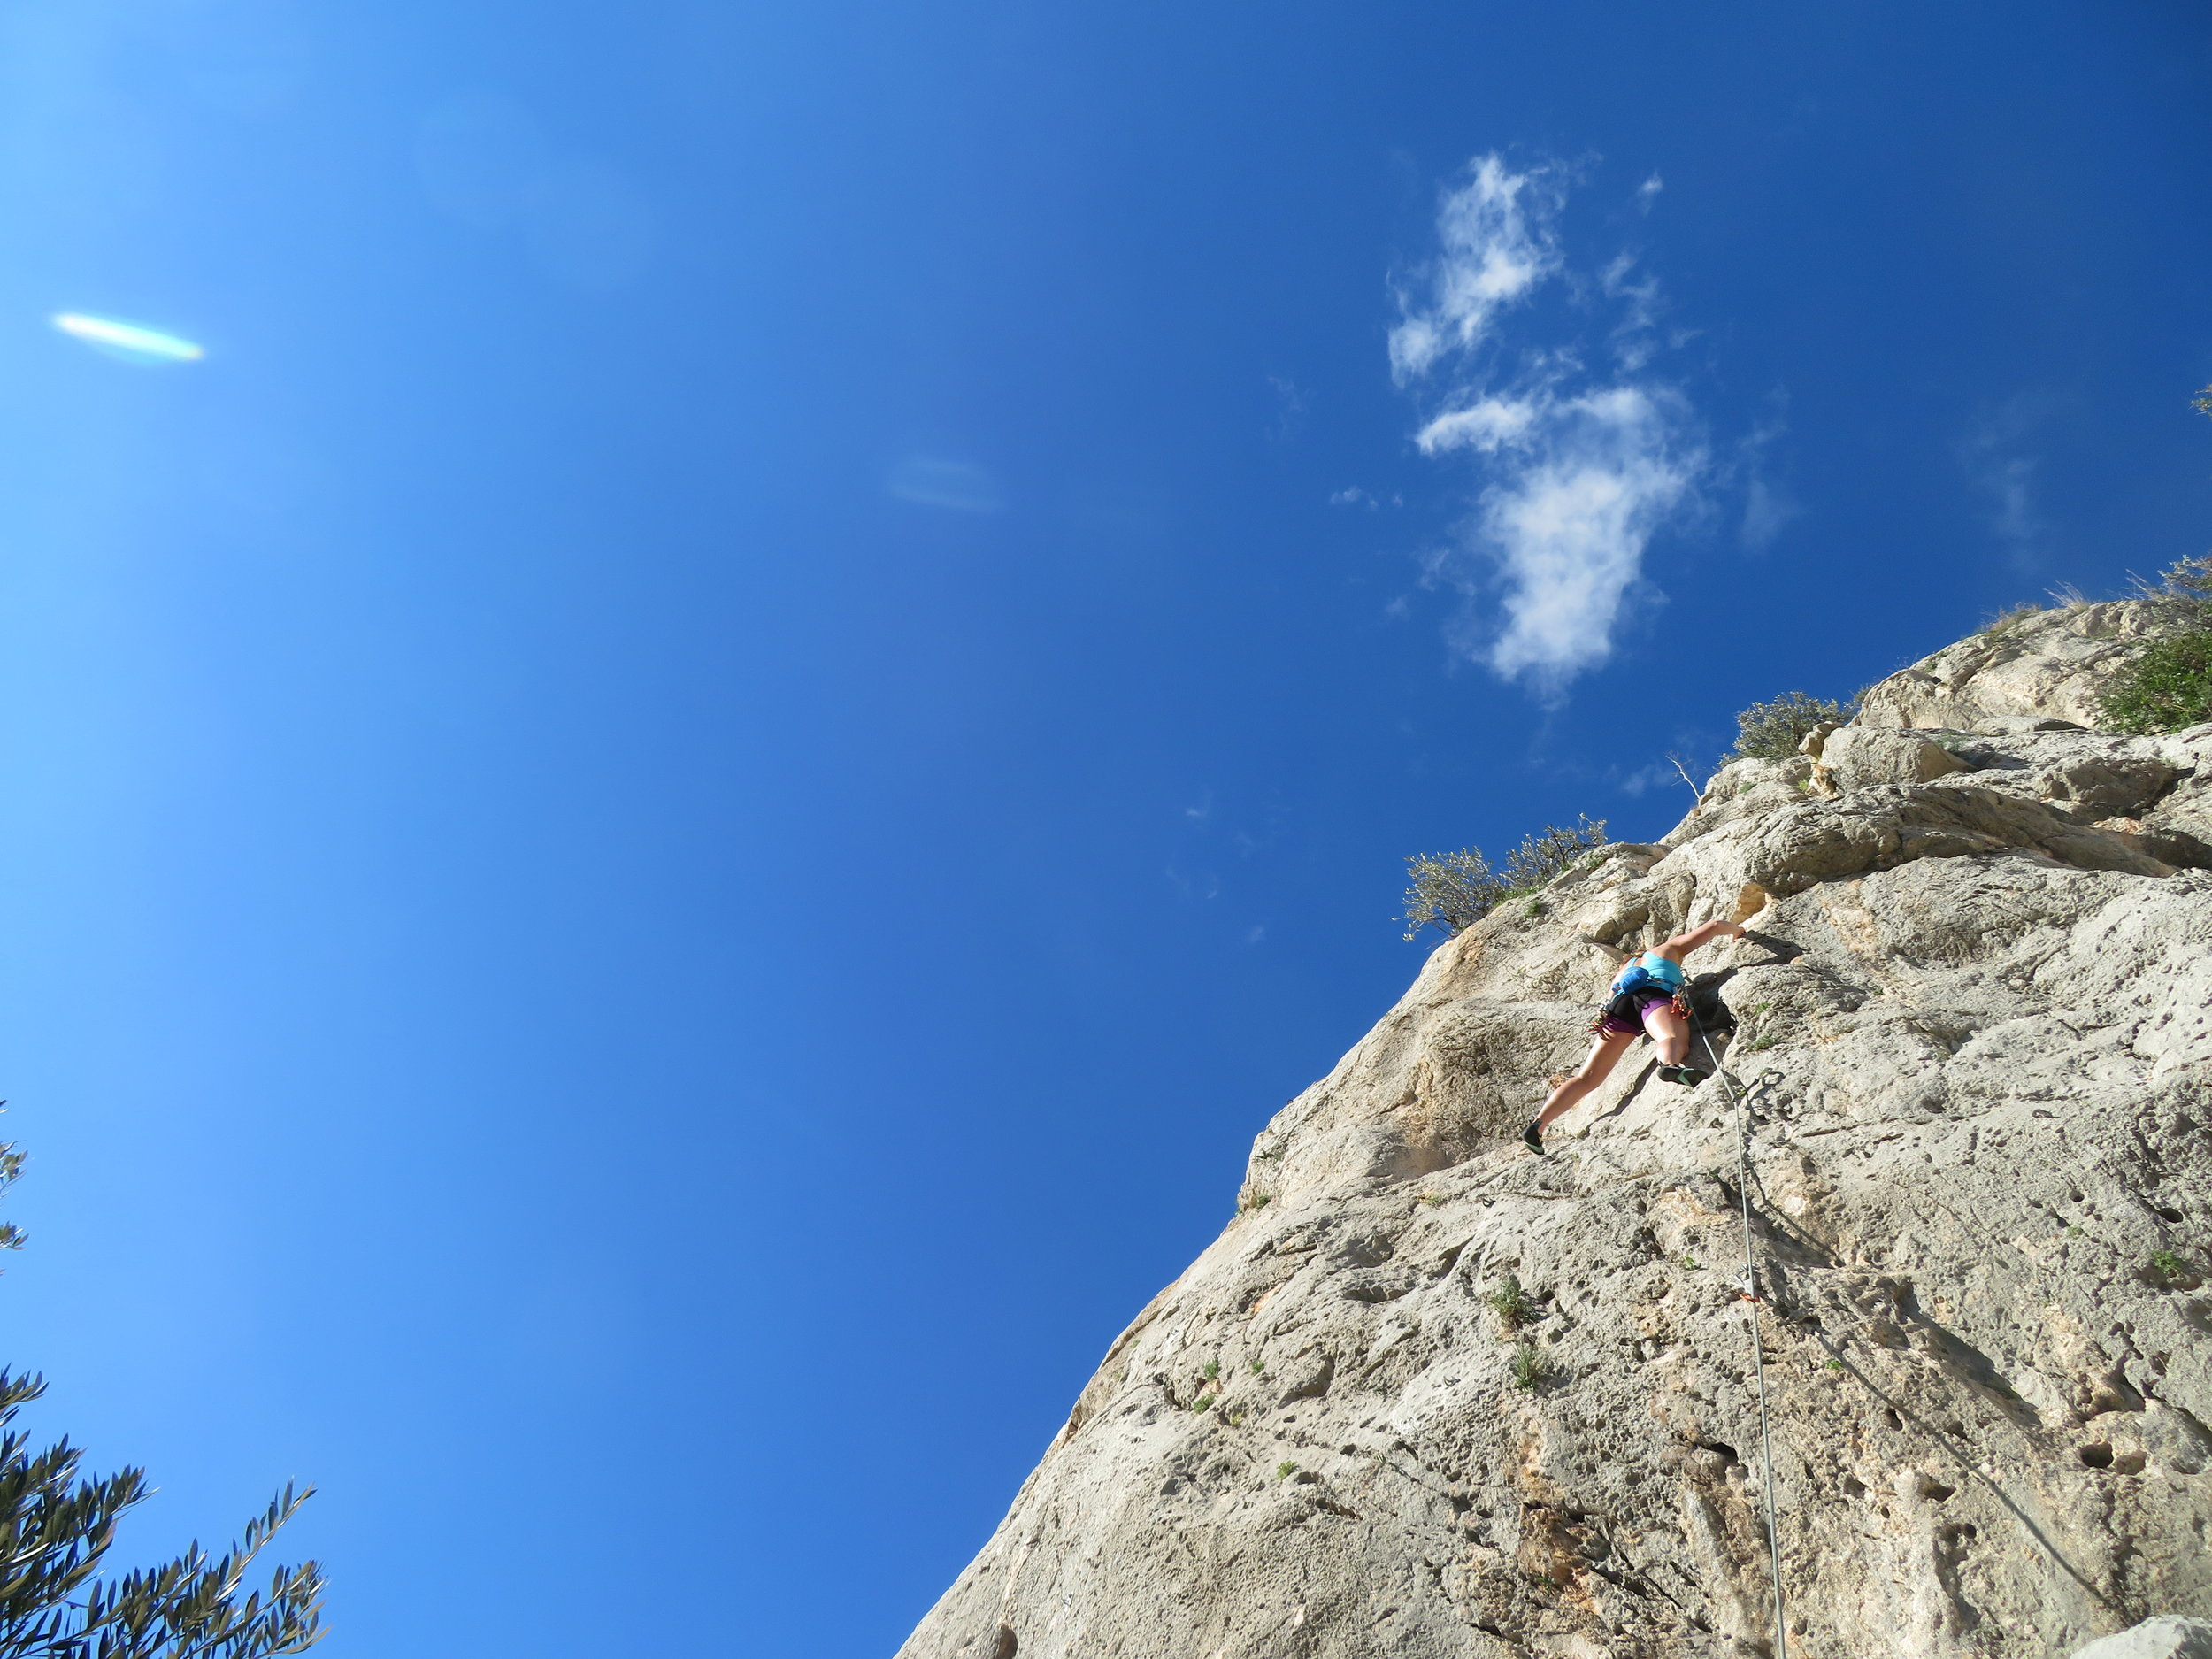 Ahhh warm rock and sunshine…this felt like a shock to the system! But coming back was even harder! Lou cruising above El Chorro.